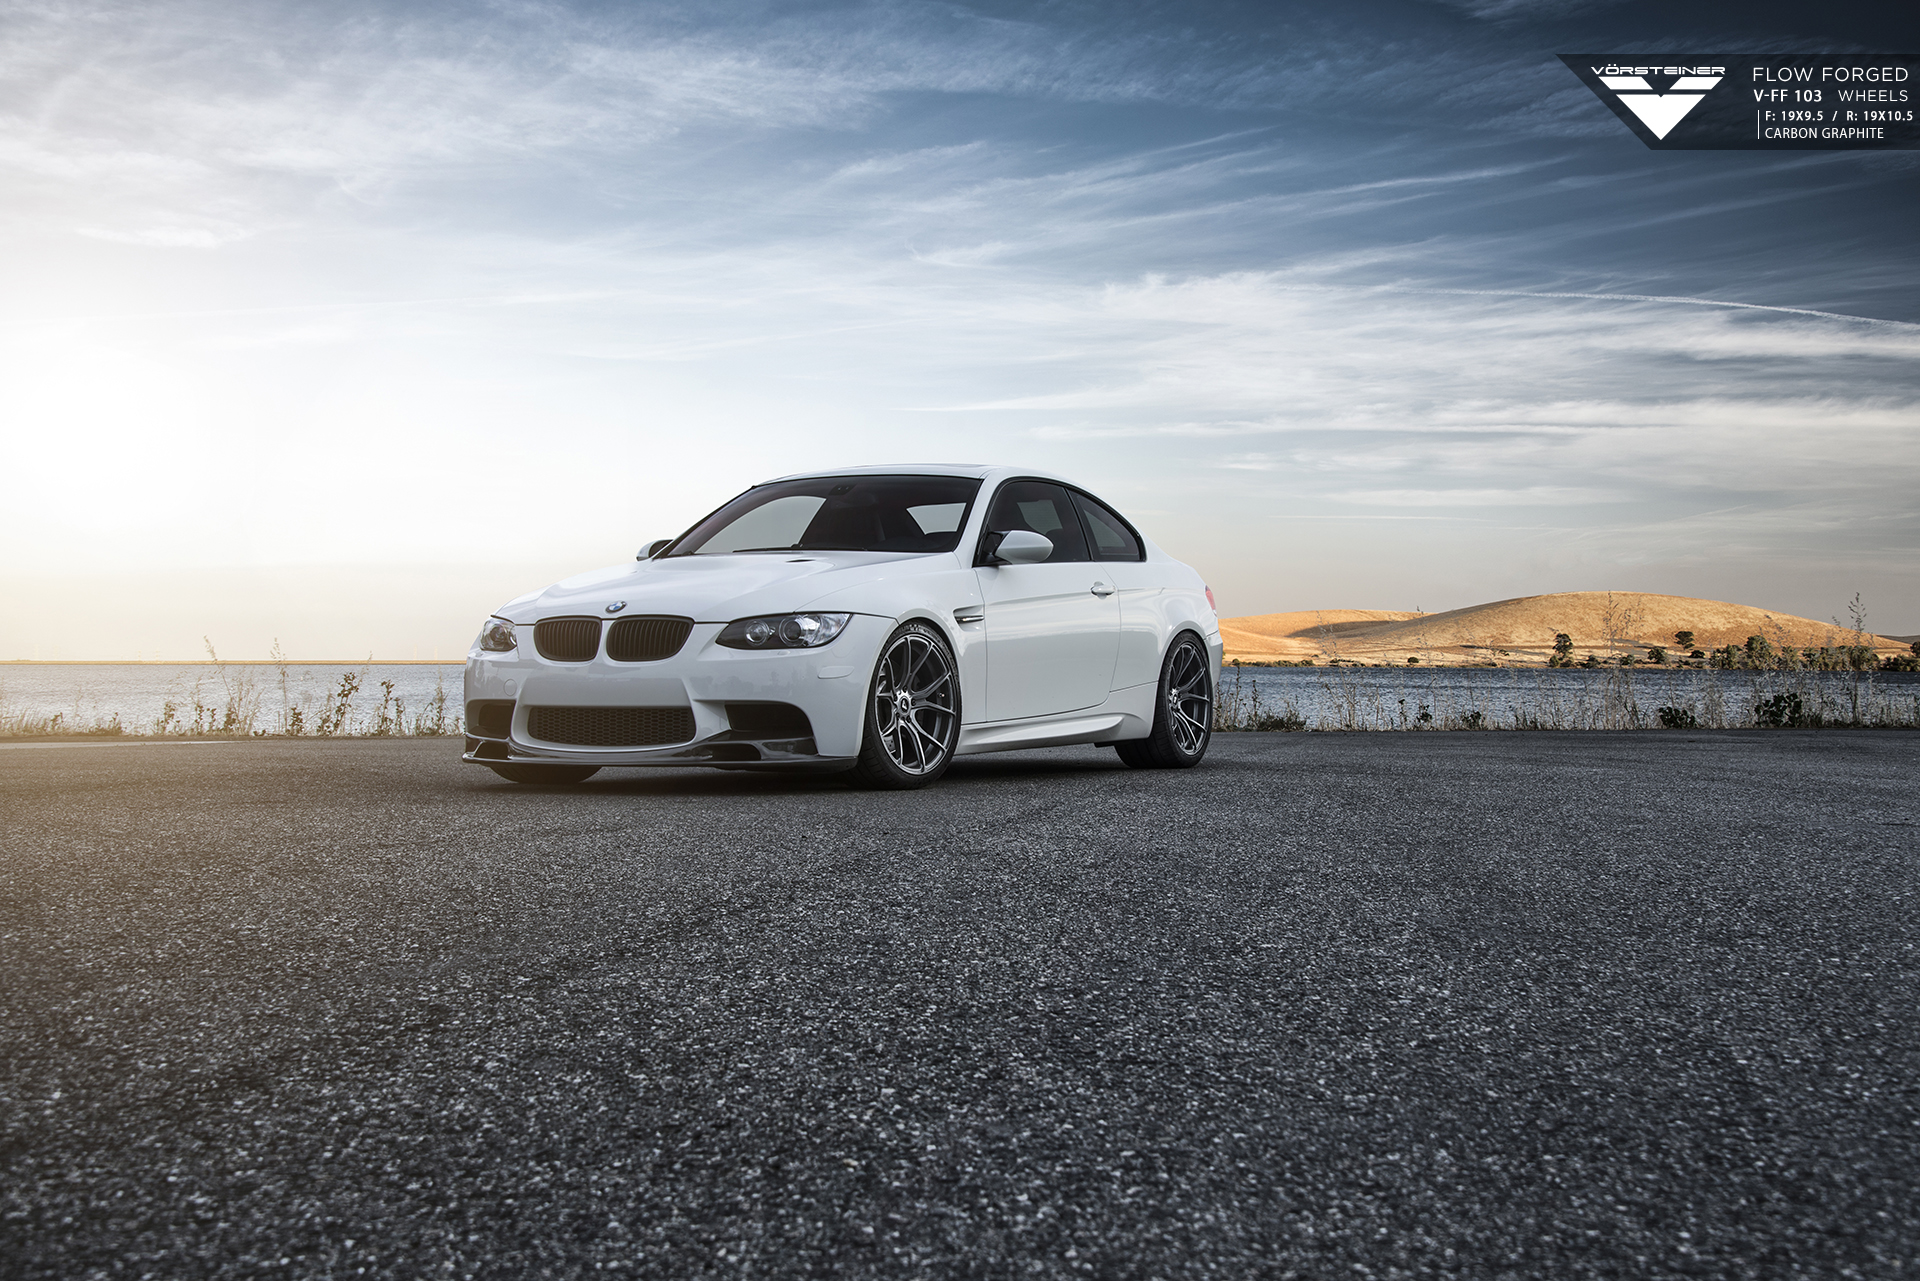 BMW E92 M3 on Vorsteiner Flow Forged V FF 103 Wheels 1